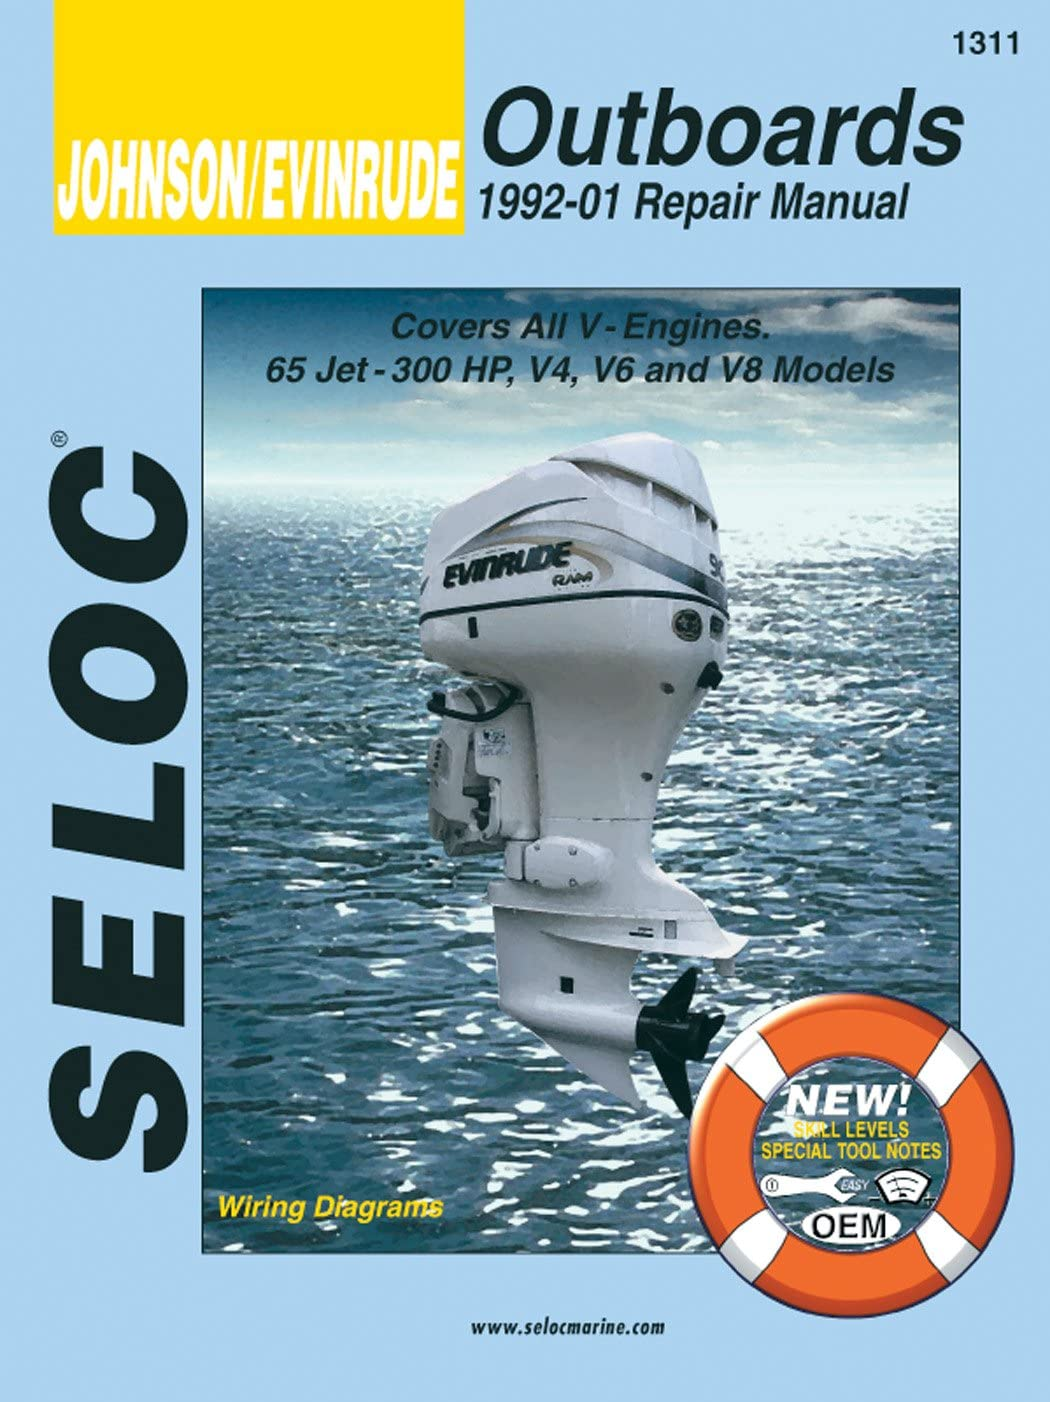 Sierra International Seloc Mail order cheap Manual Outb Johnson Surprise price 18-01311 Evinrude